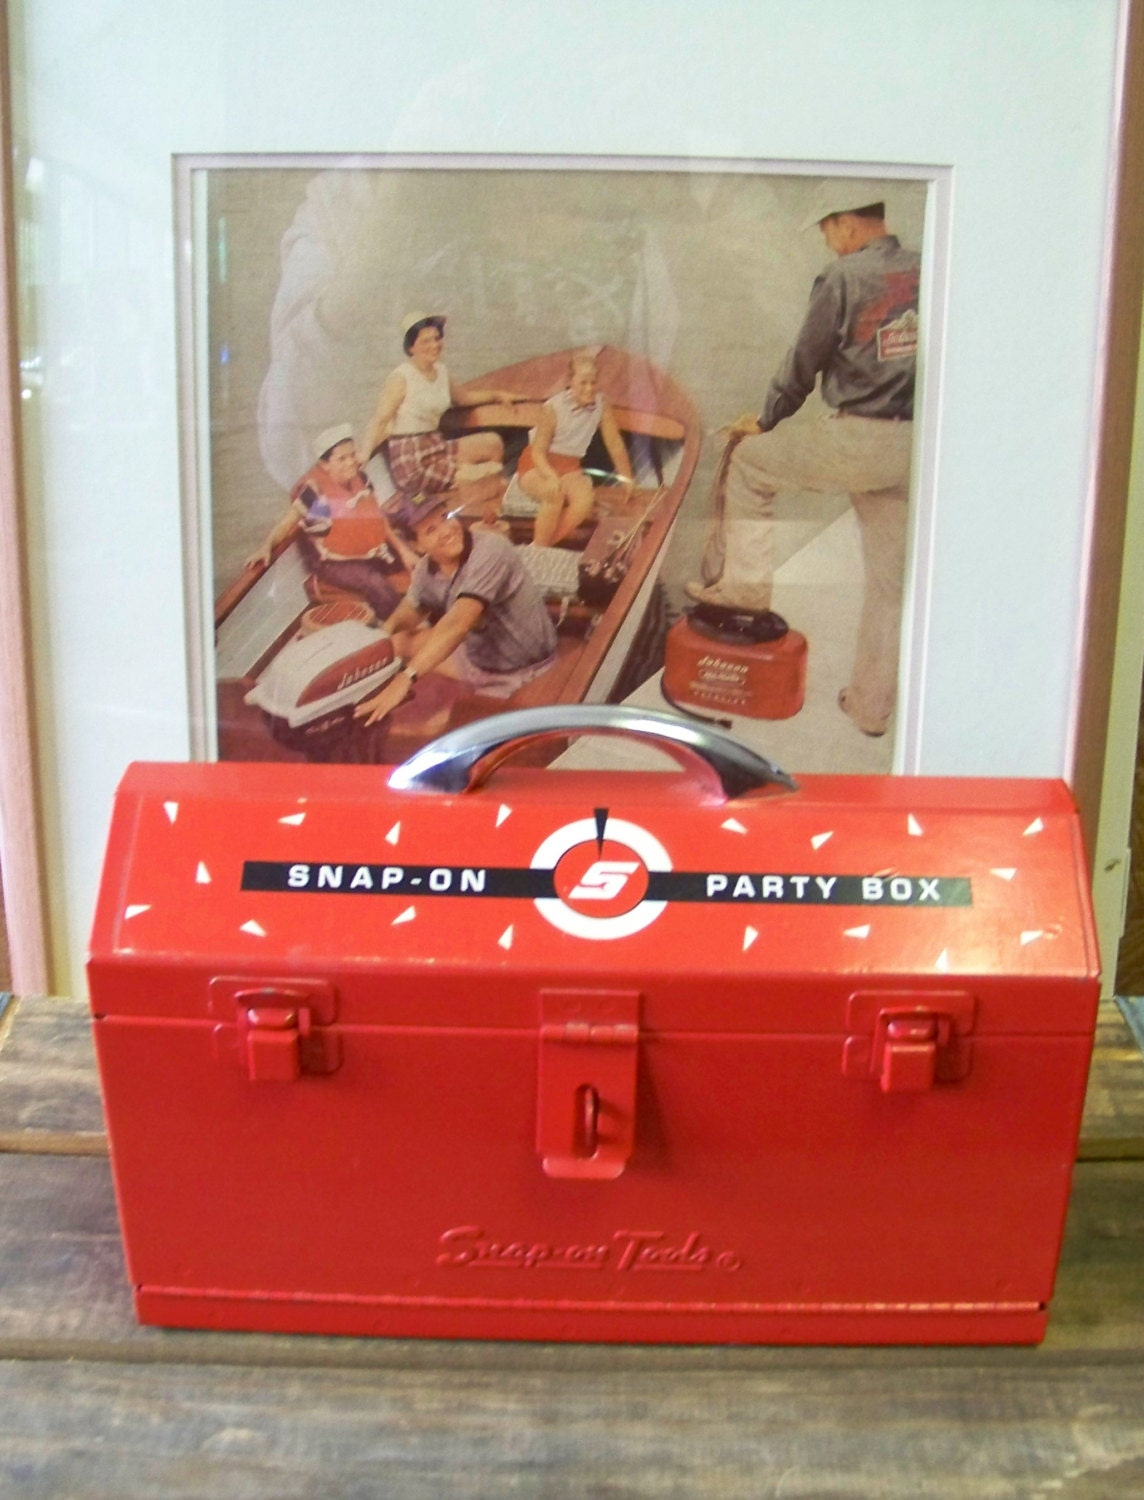 Snap on tools vintage advertising promotional tool box party for Quality craft tool box